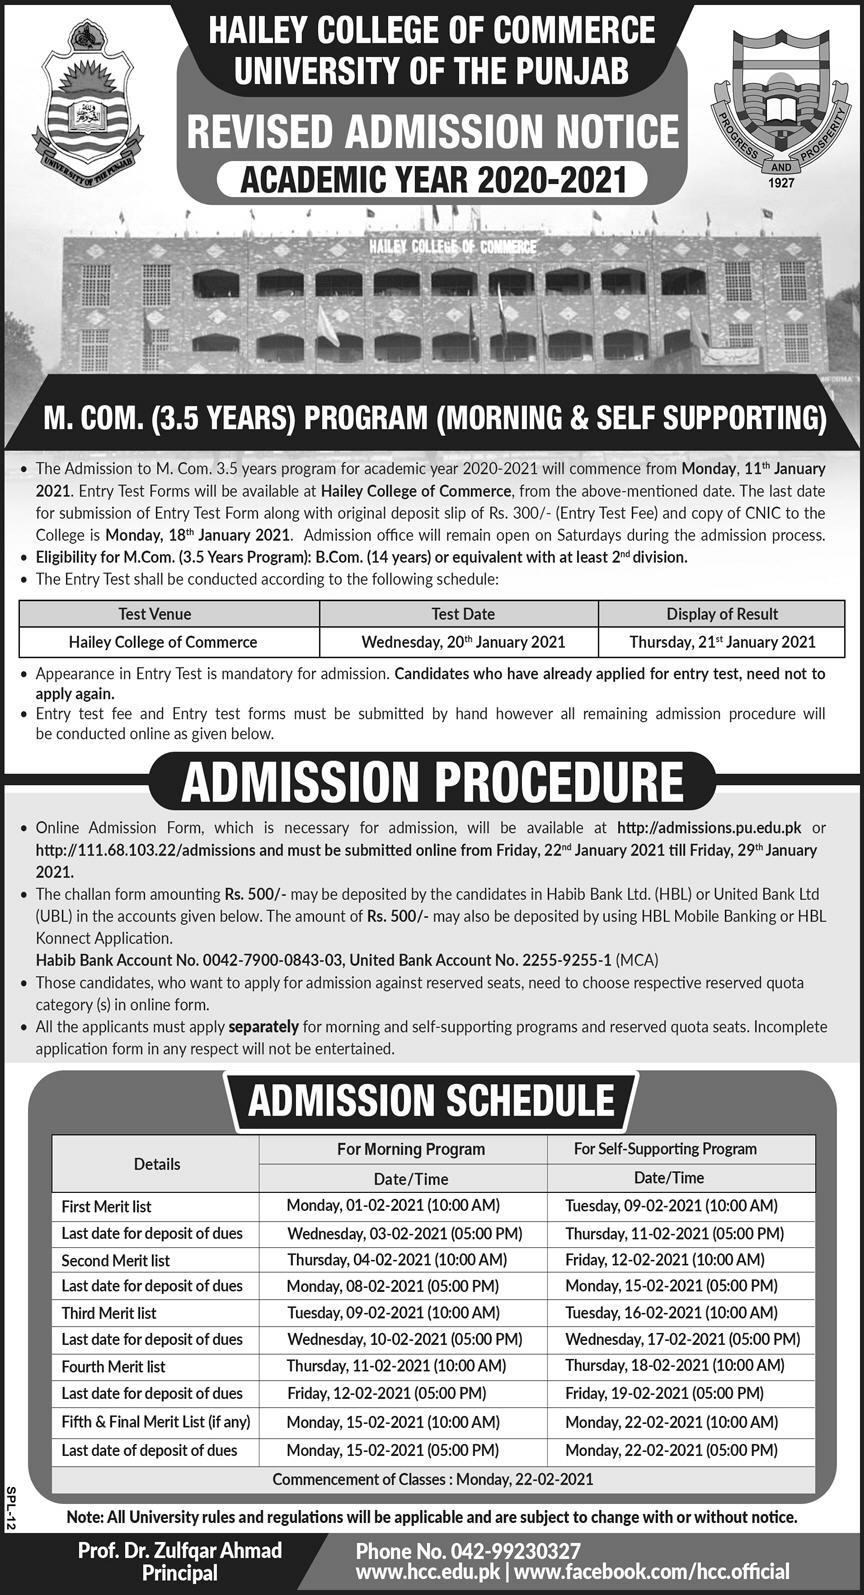 HAILEY COLLEGE OF COMMERCE , UNIVERSITY OF THE PUNJAB ADMISSION 2021